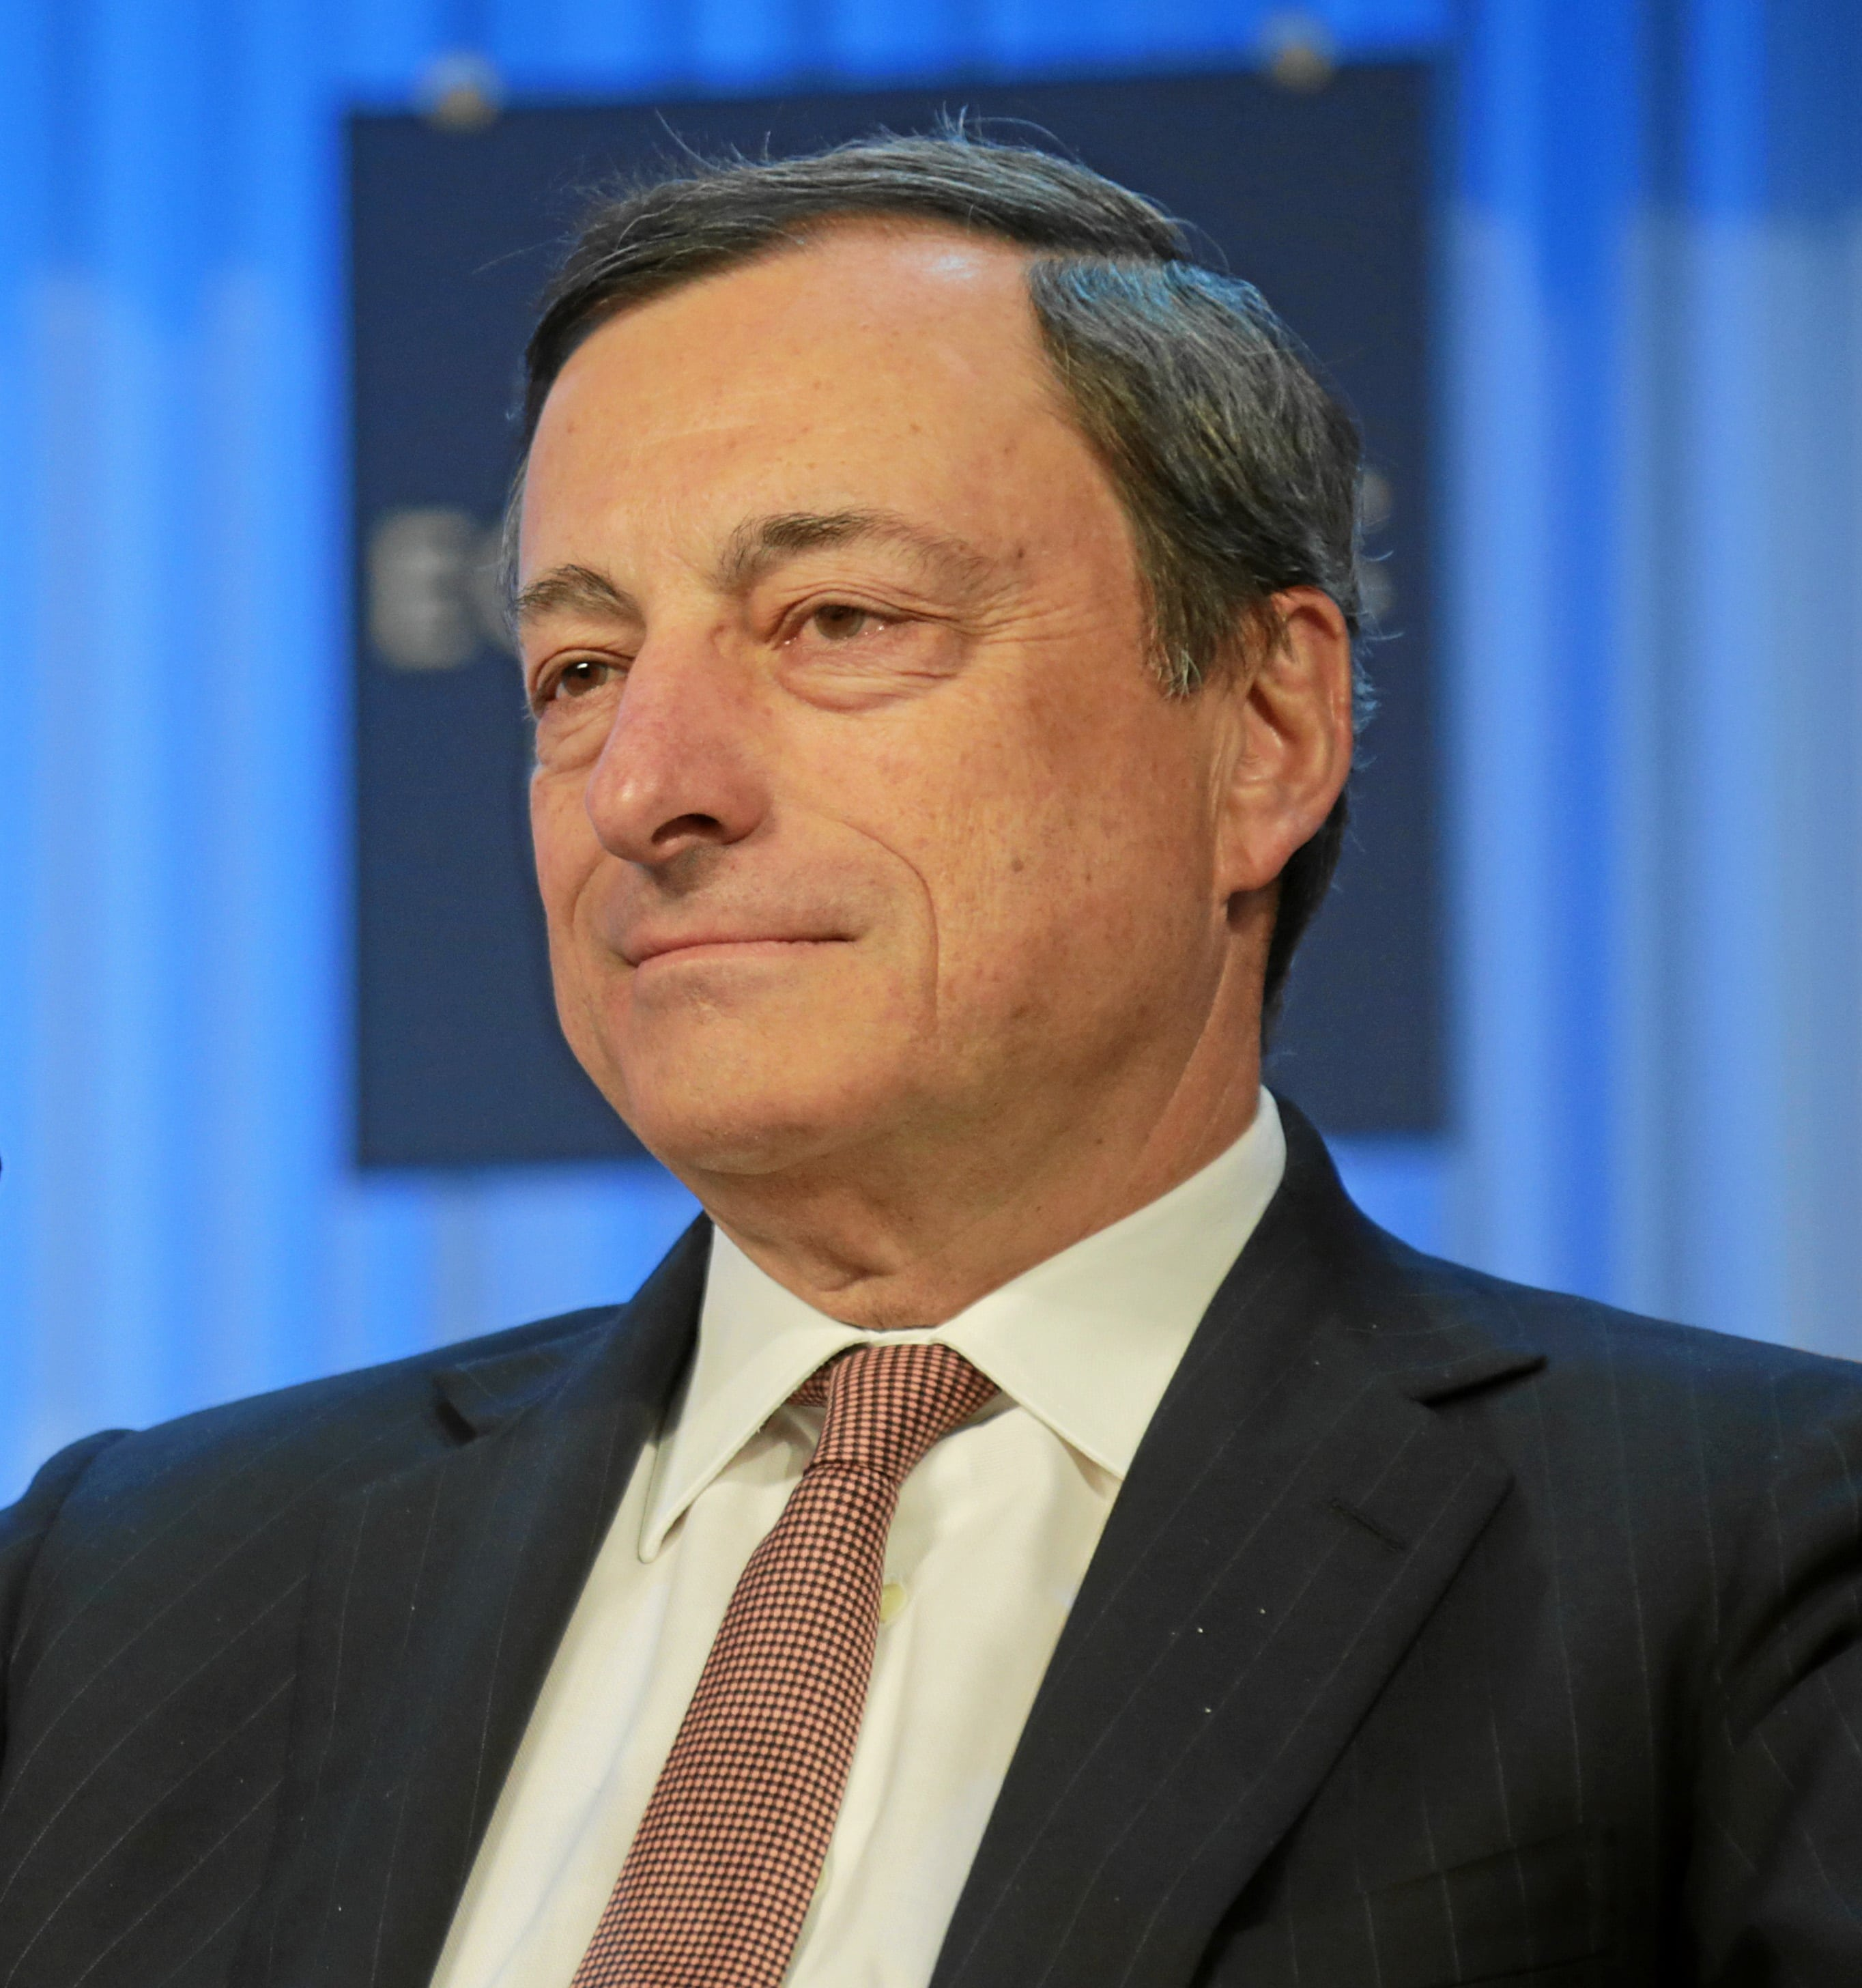 Jamie Coleman: ECB's QE Will Show Division, Not Unity